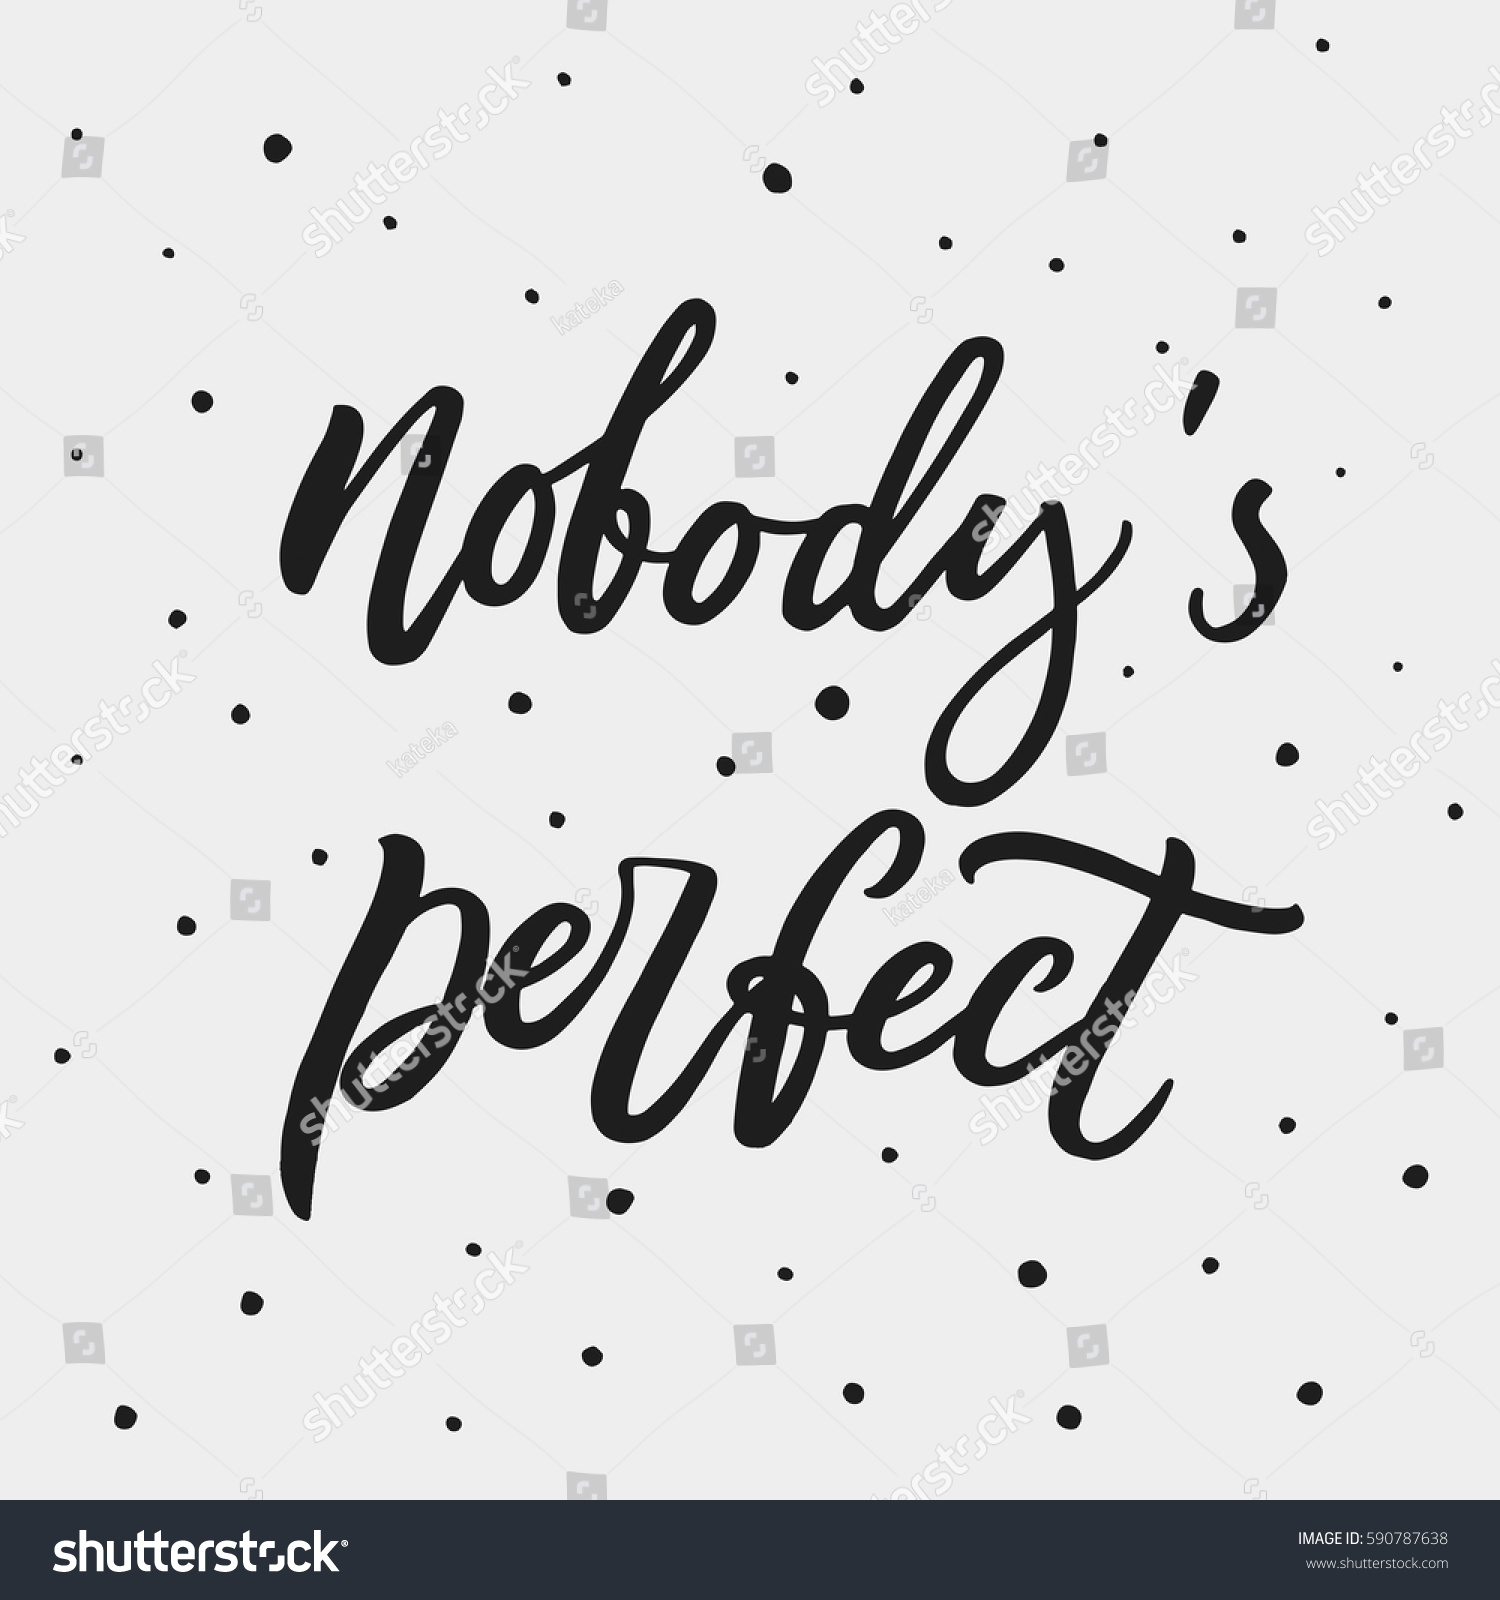 Nobodys Perfect Inspirational Phrase About Making Stock Vector